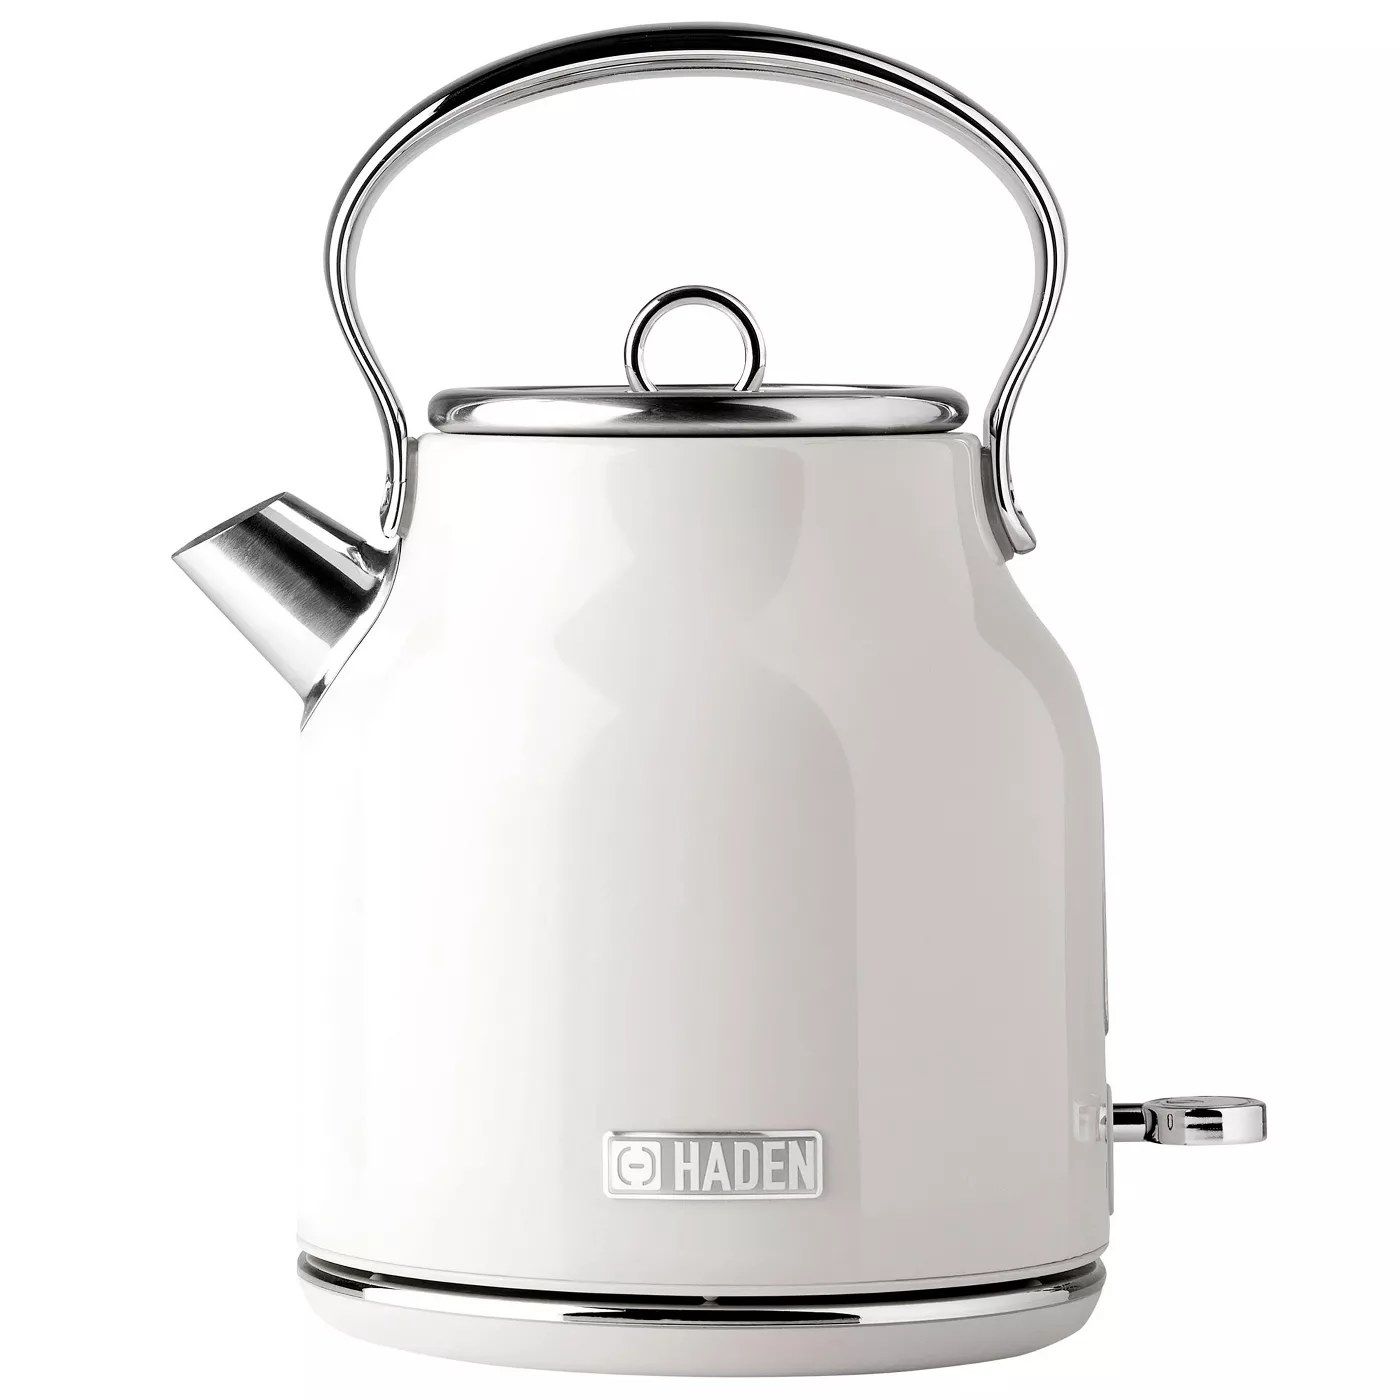 The white electric kettle